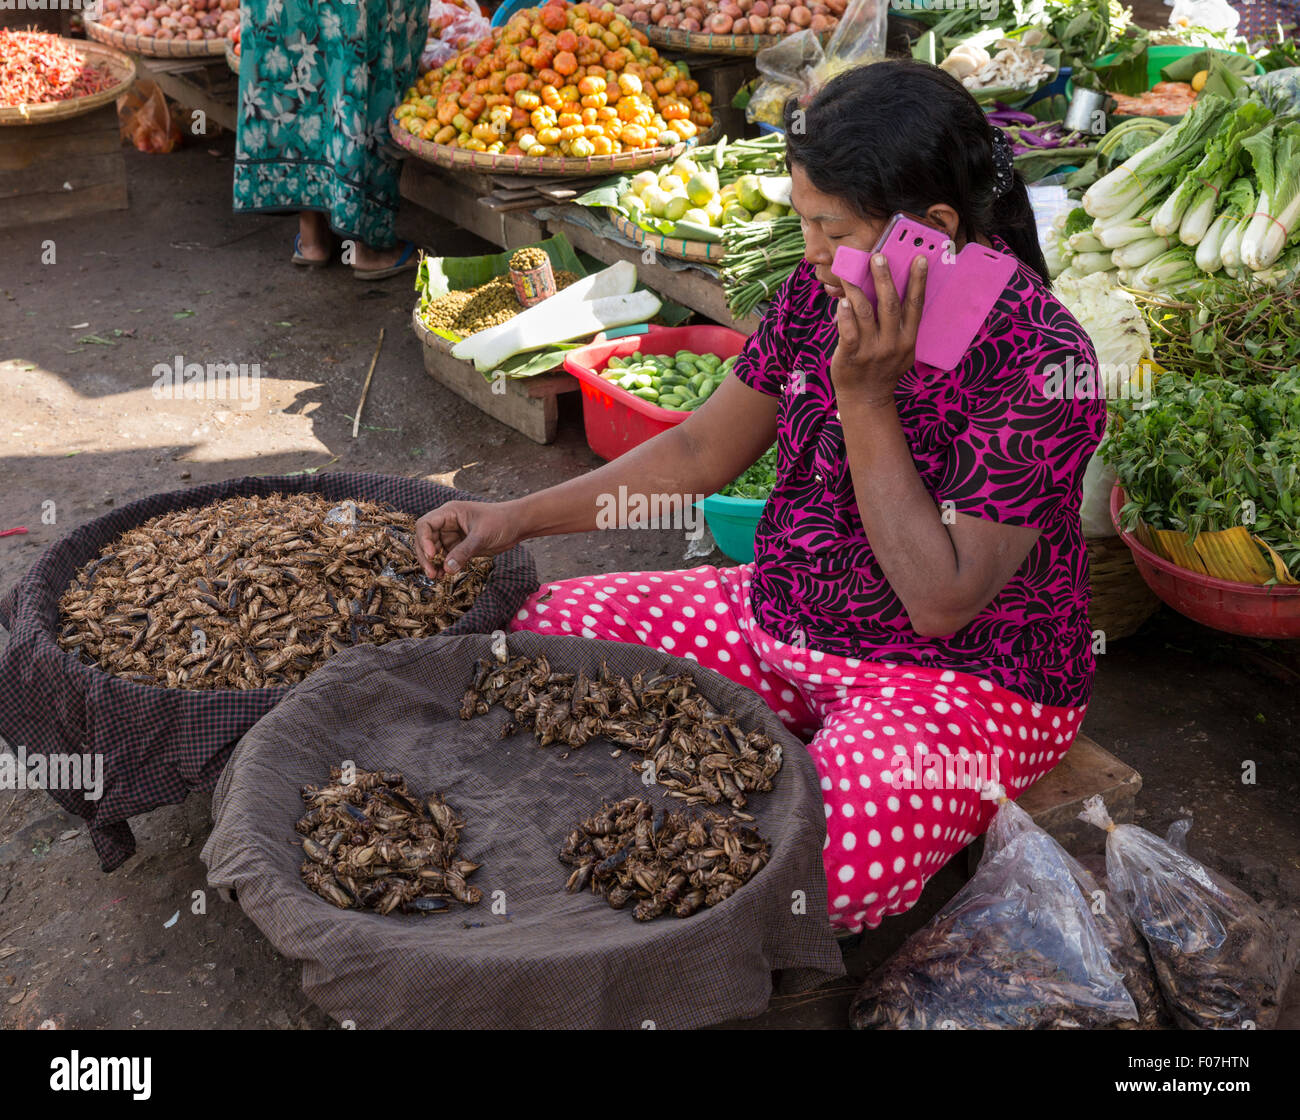 Woman chats on mobile phone while selling fried crickets at the market in Pyin Oo Lwin, the historic hill station - Stock Image